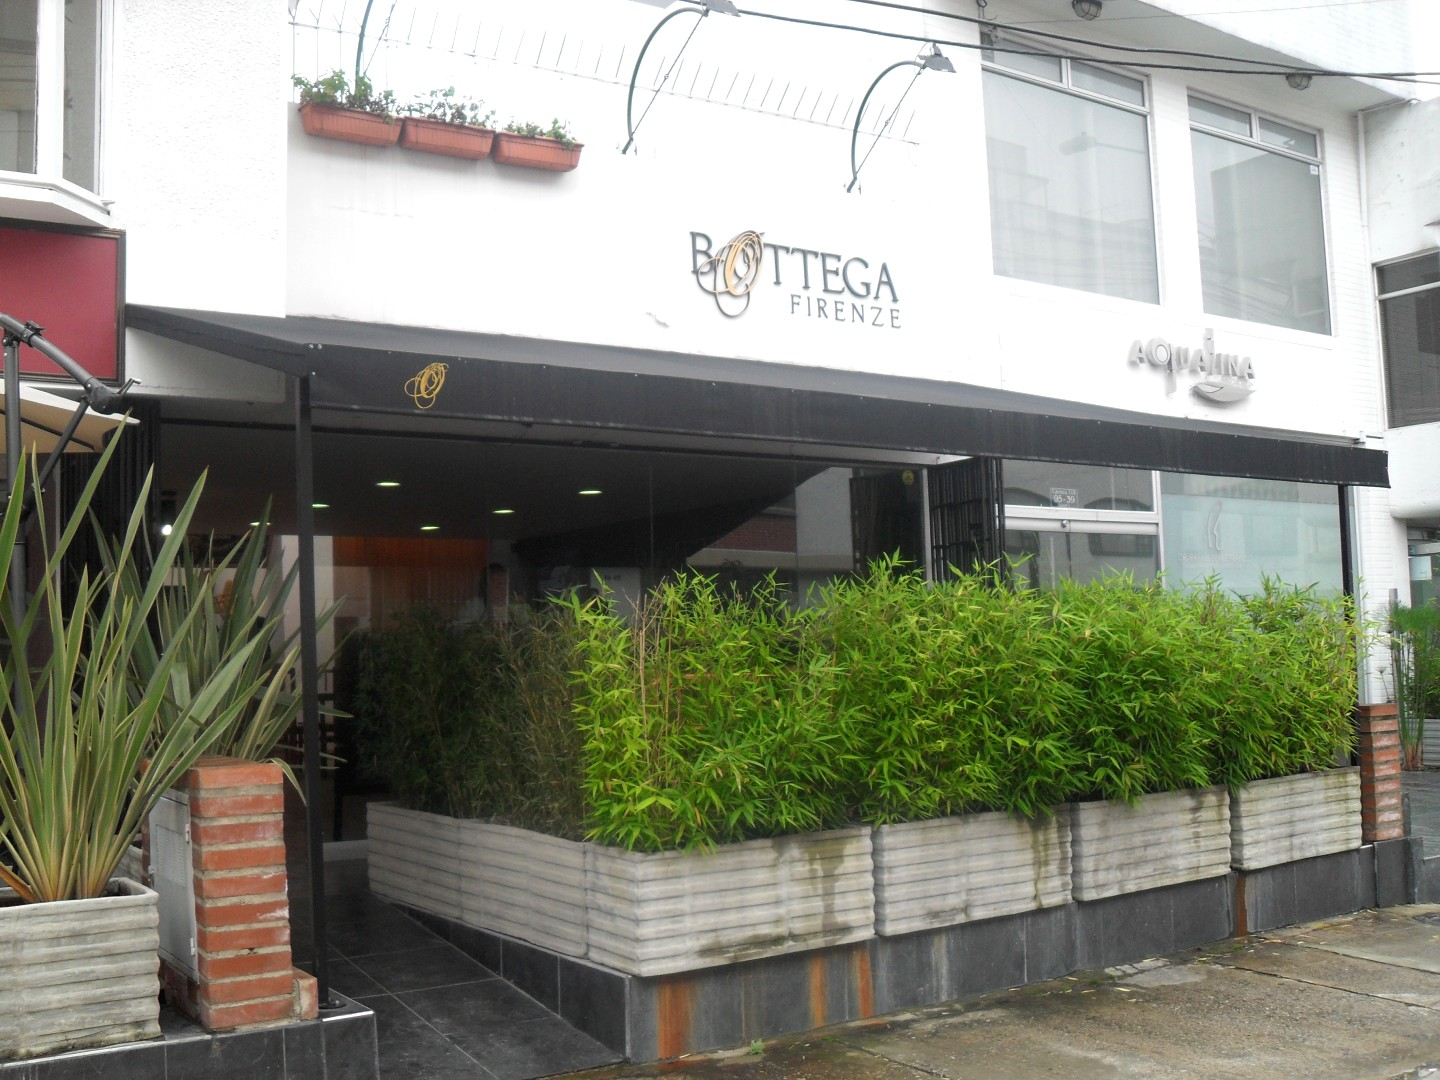 Bottega Firenze (Chico)